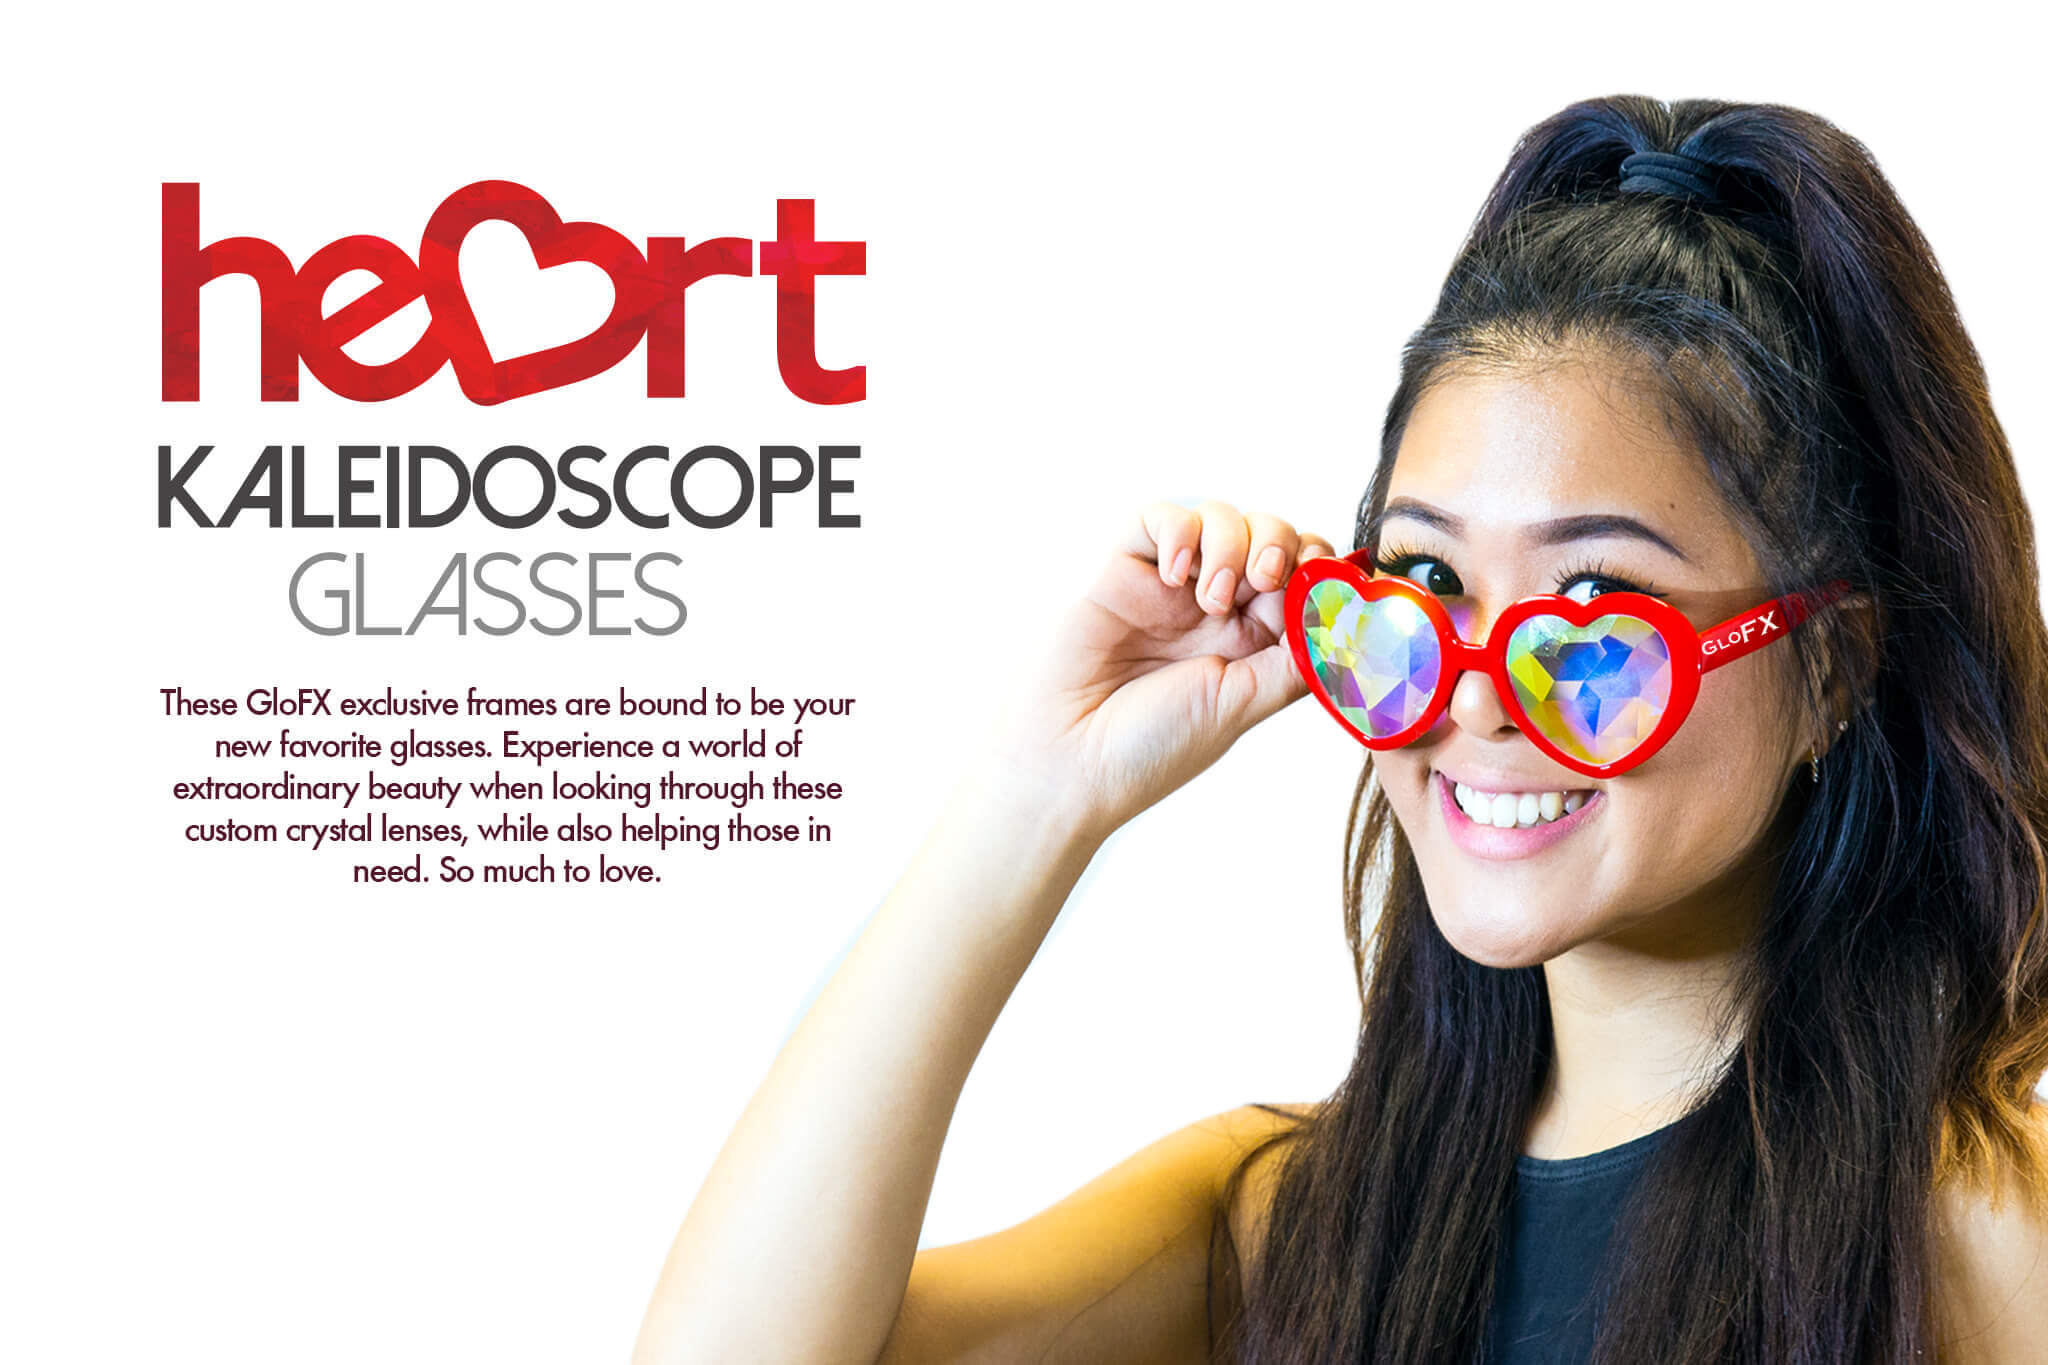 red heart kaleidoscope glasses